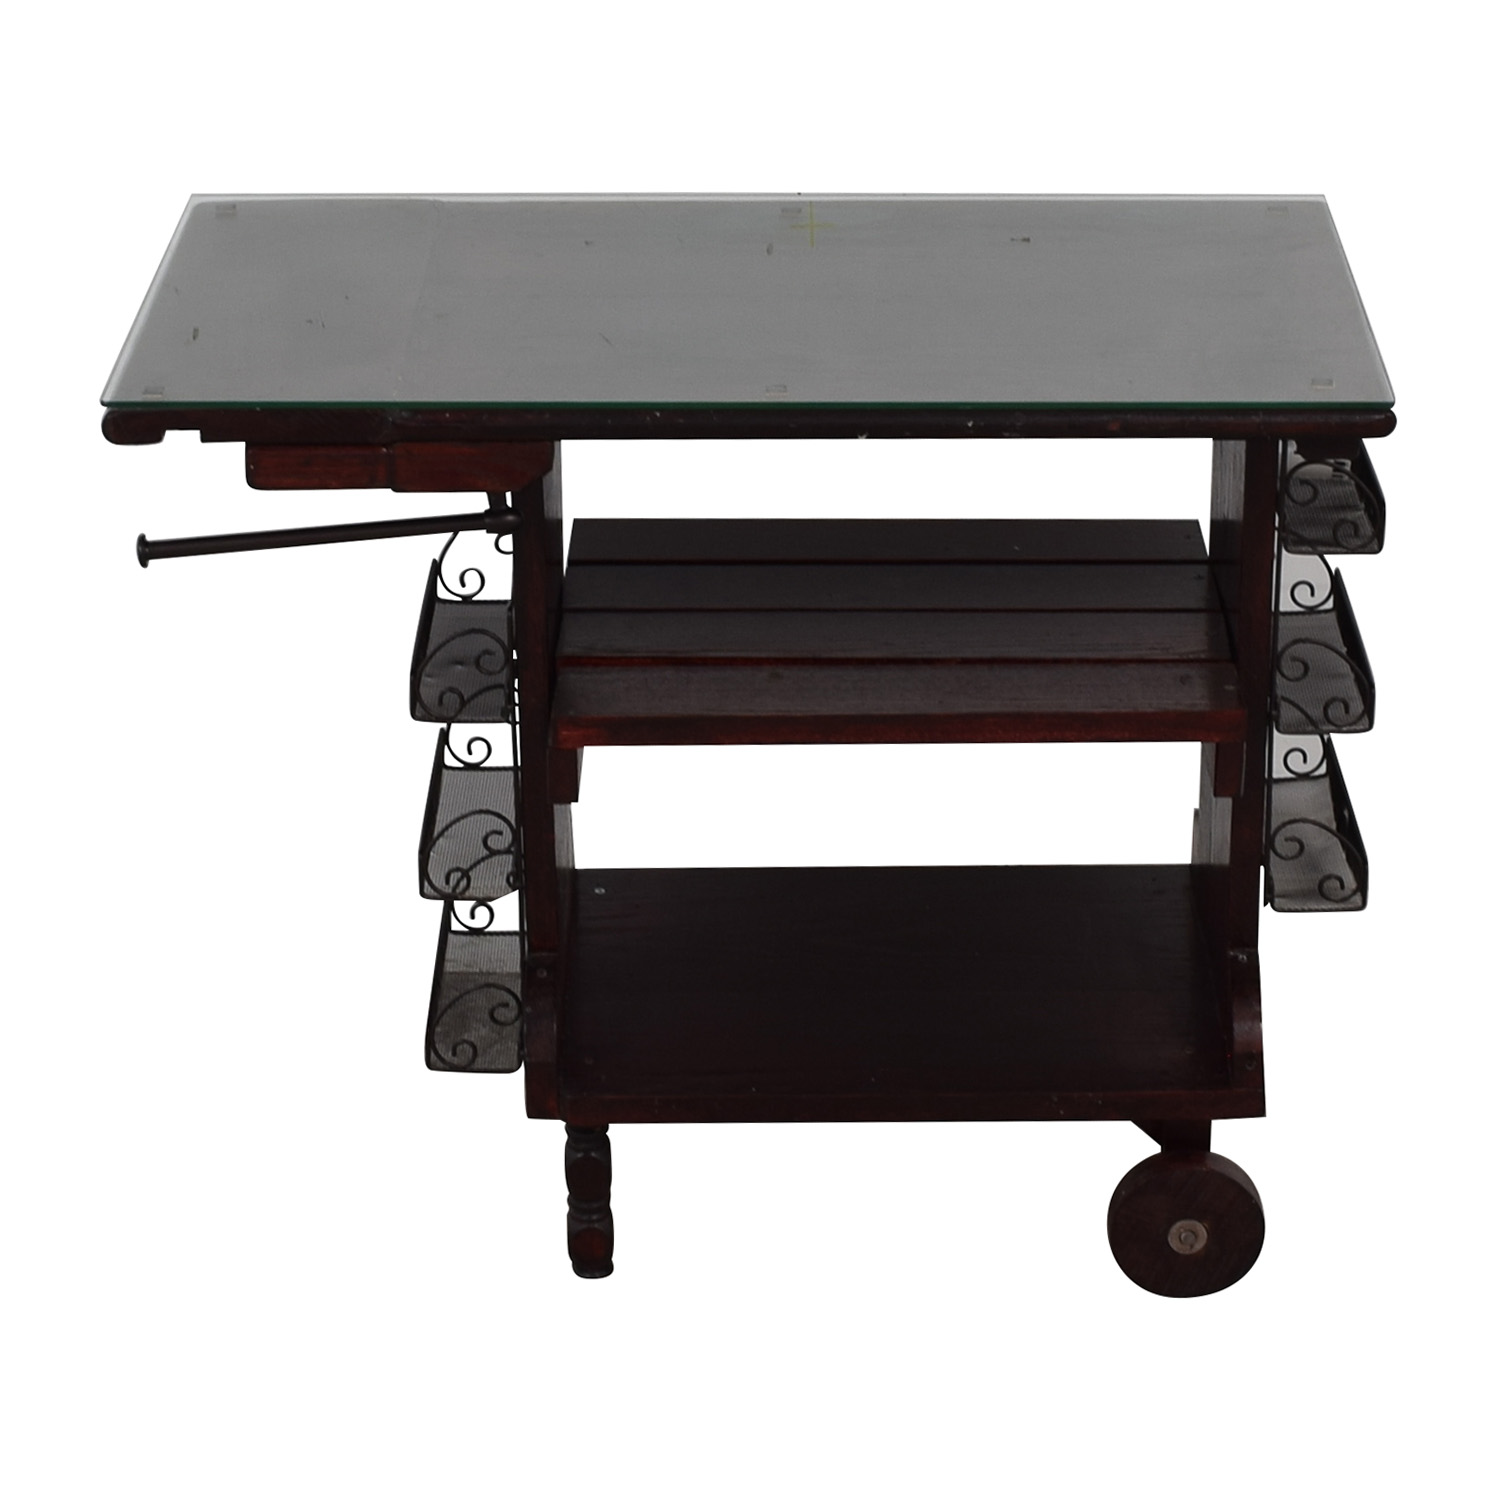 buy  Custom Oak Kitchen Island with Tempered Glass on Casters online